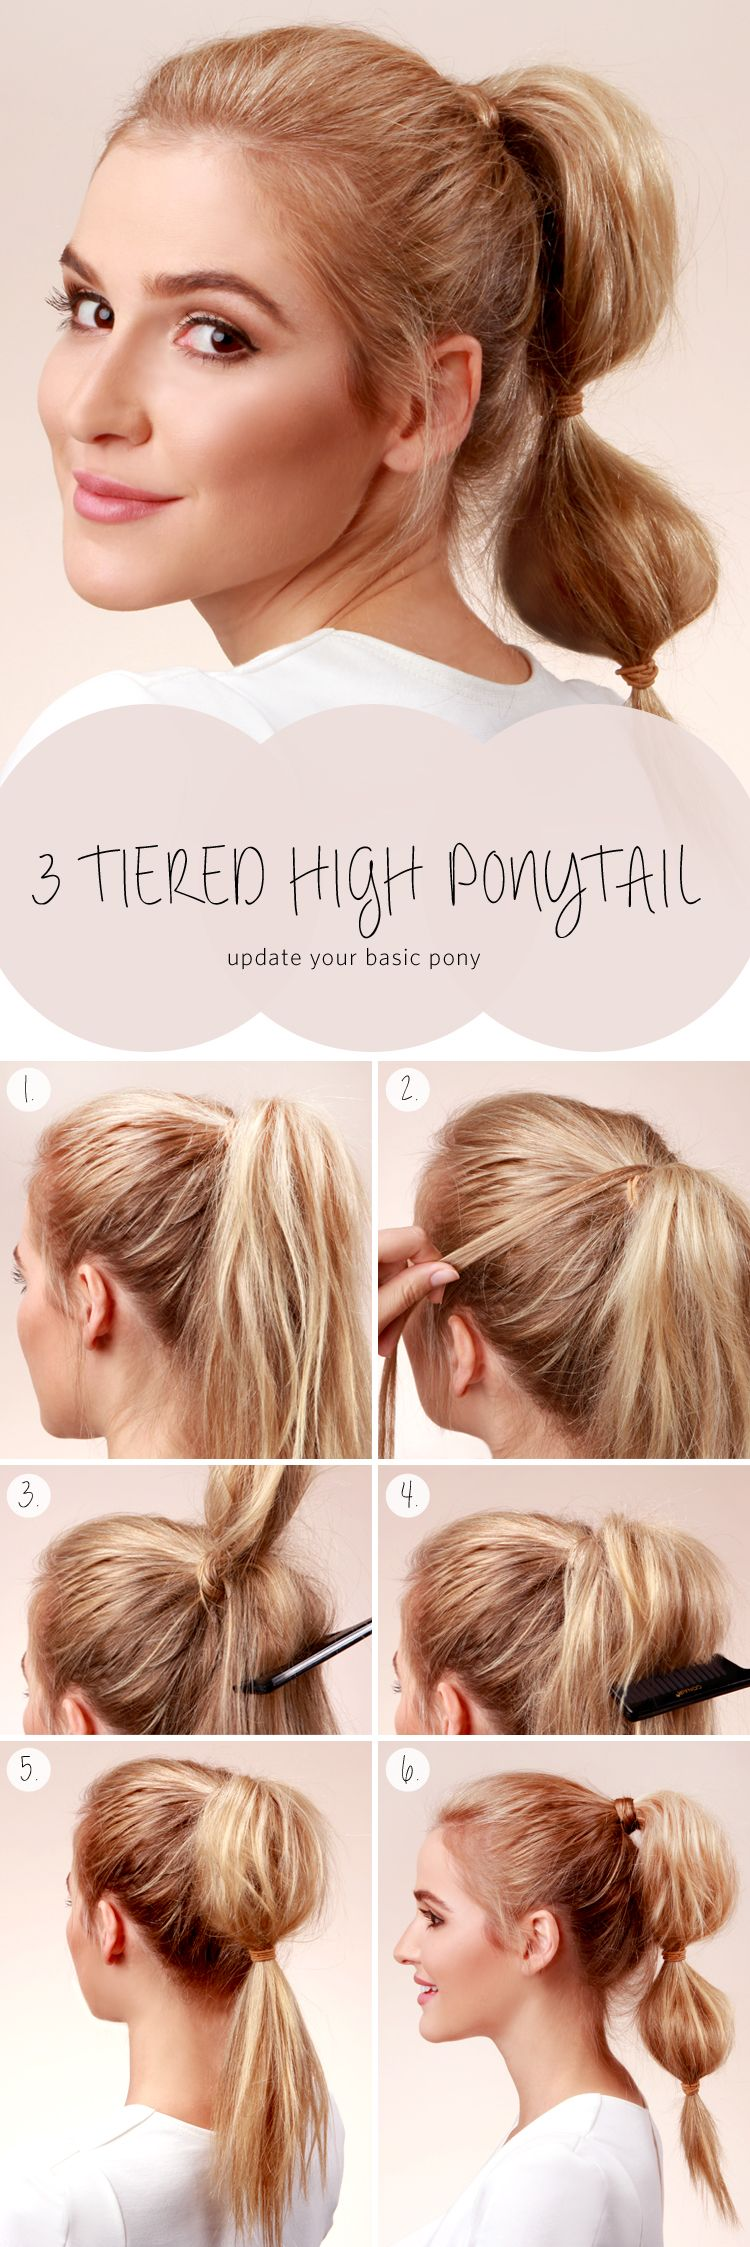 Lulus howto three tiered high ponytail tutorial high ponytails